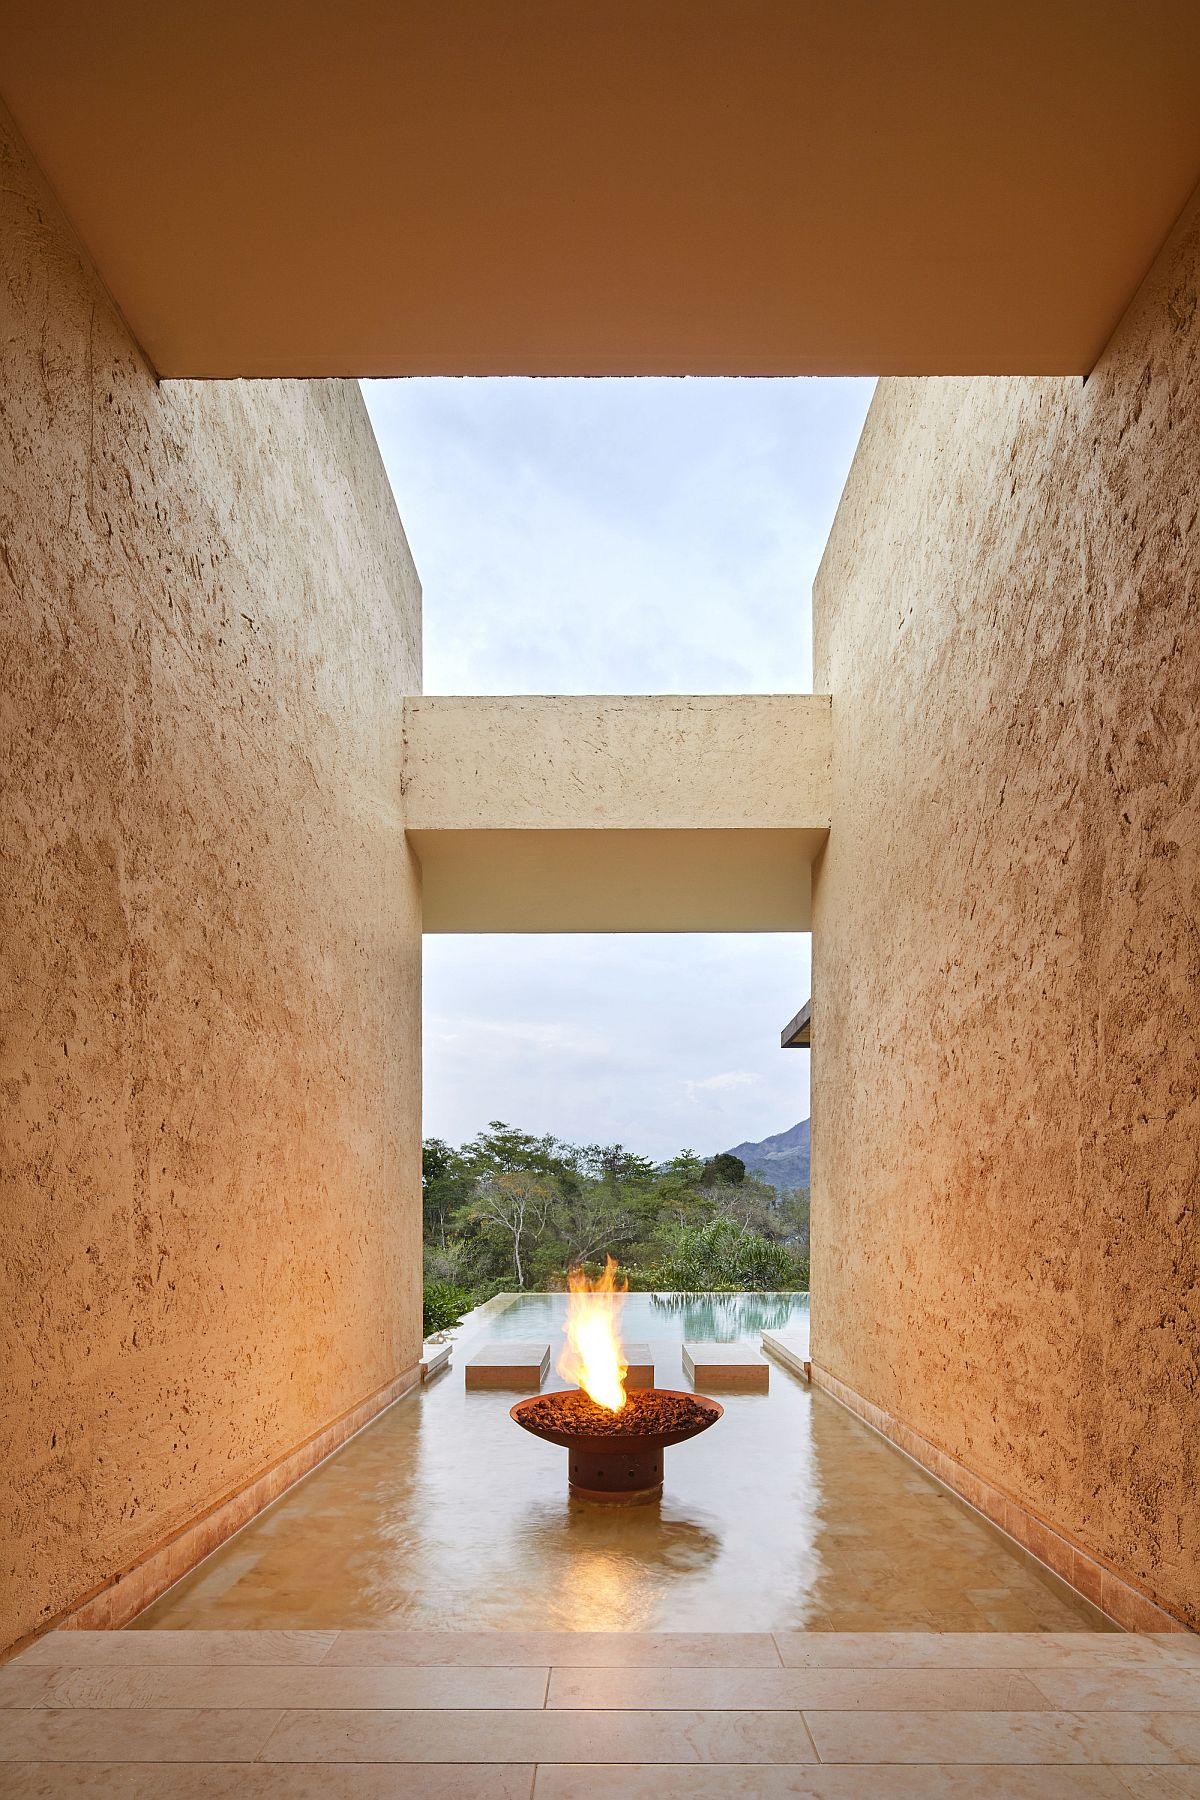 Stone walls that create entry to the pool deck create the illusion of fire and water at the house